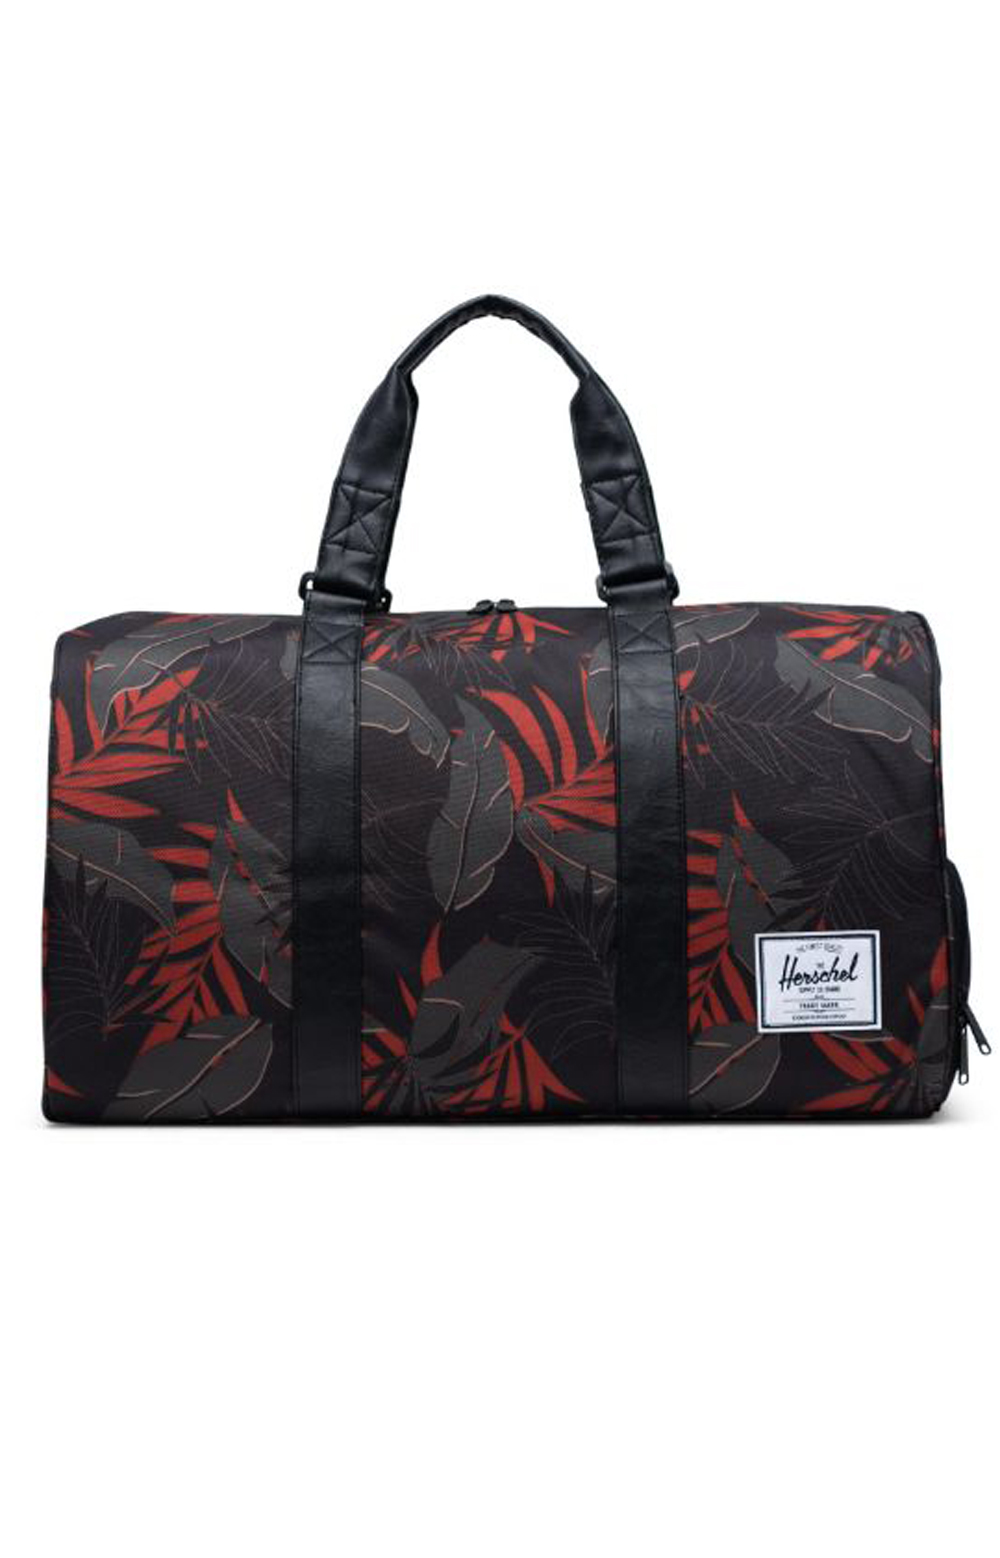 Novel Duffle Bag - Dark Olive Palm